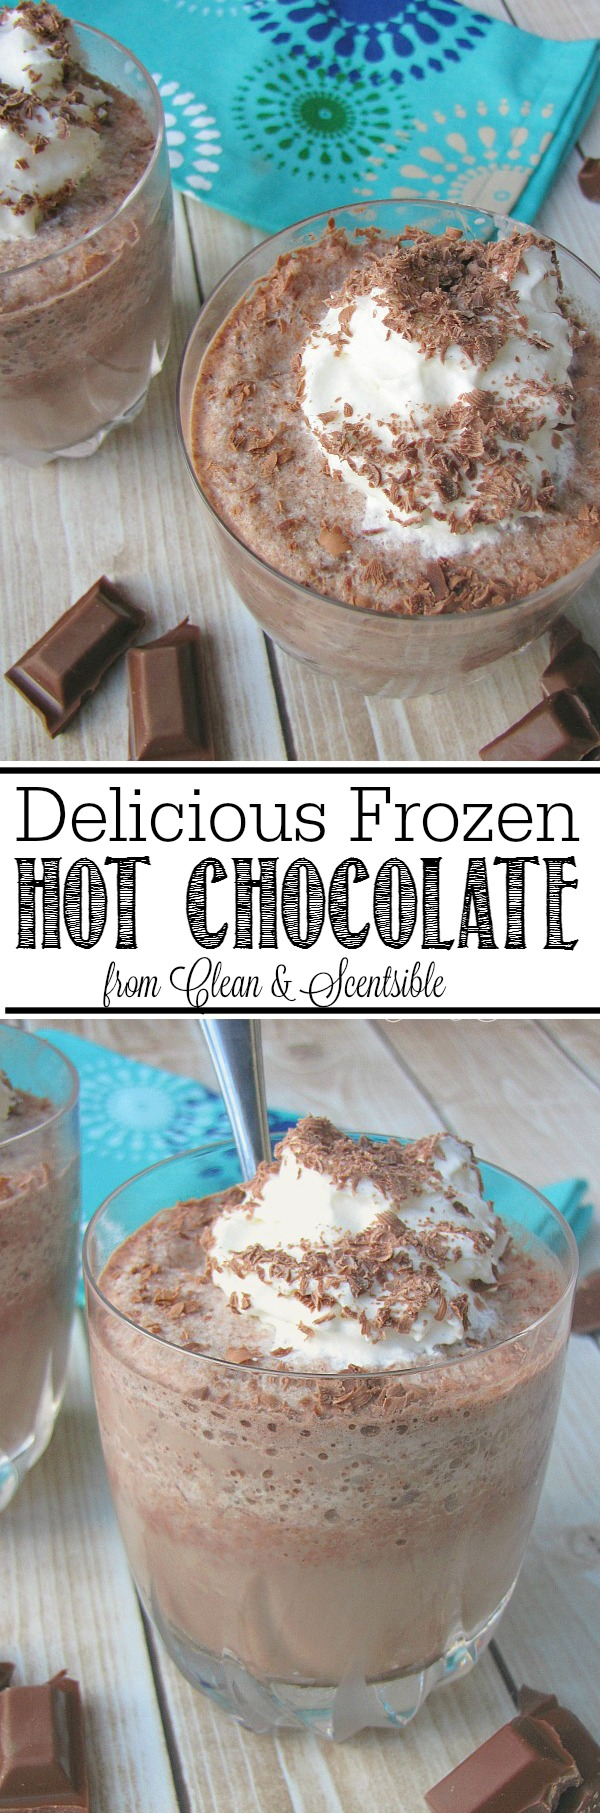 This delicious frozen hot chocolate is the best way to beat the heat this summer!